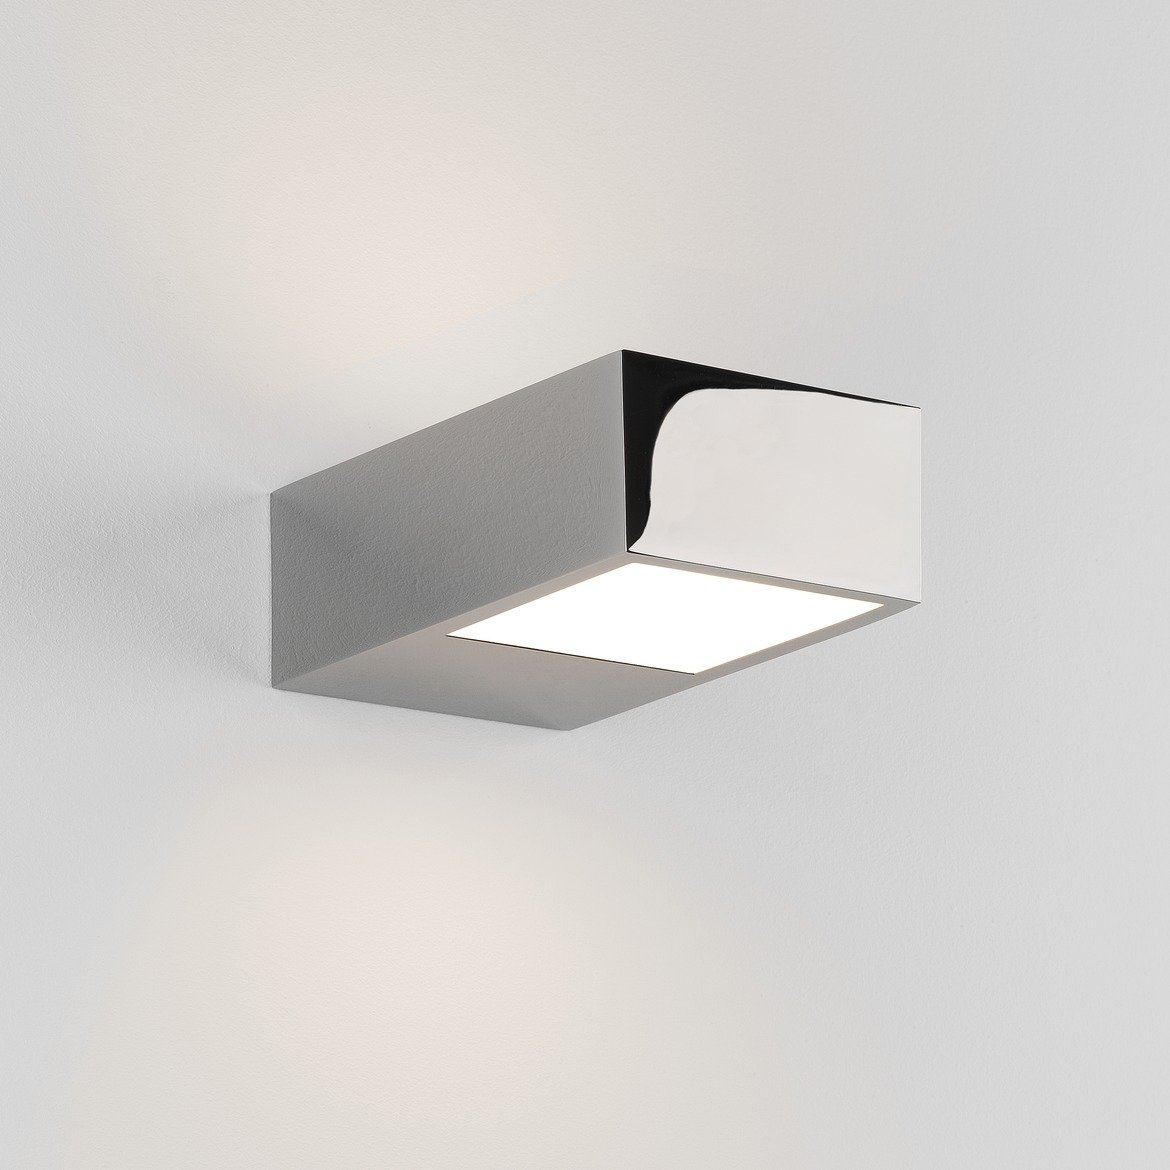 Astro Lighting 1151003 Kappa LED Bathroom Wall Light